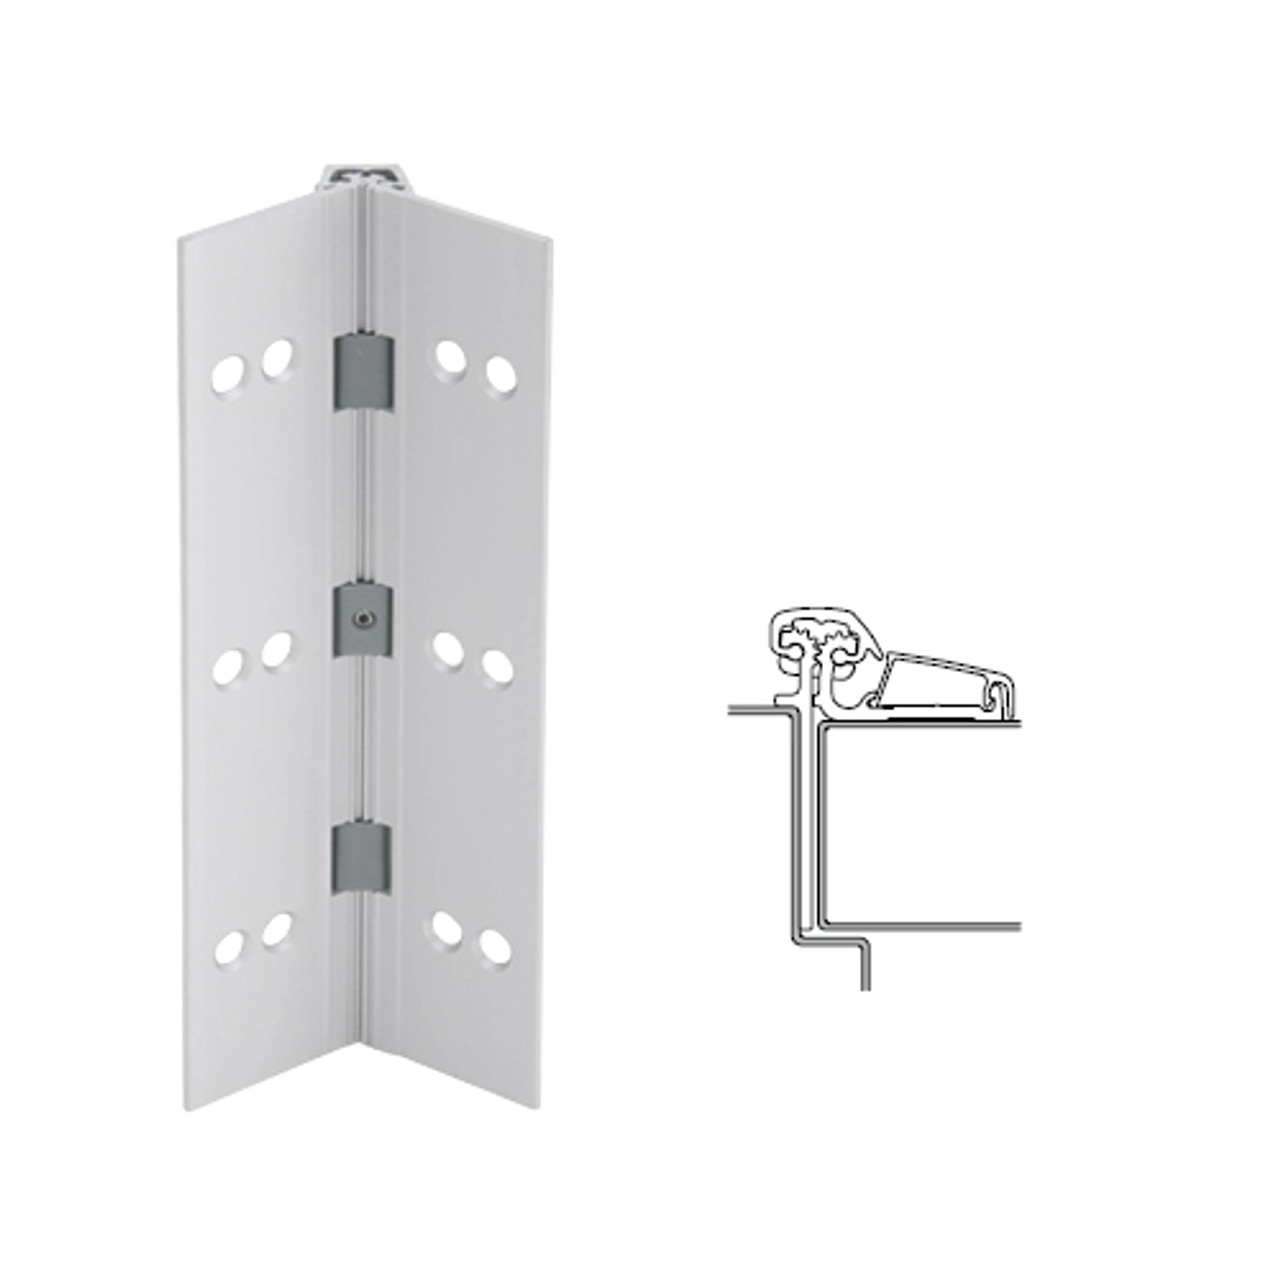 054XY-US28-95-WD IVES Adjustable Half Surface Continuous Geared Hinges with Wood Screws in Satin Aluminum